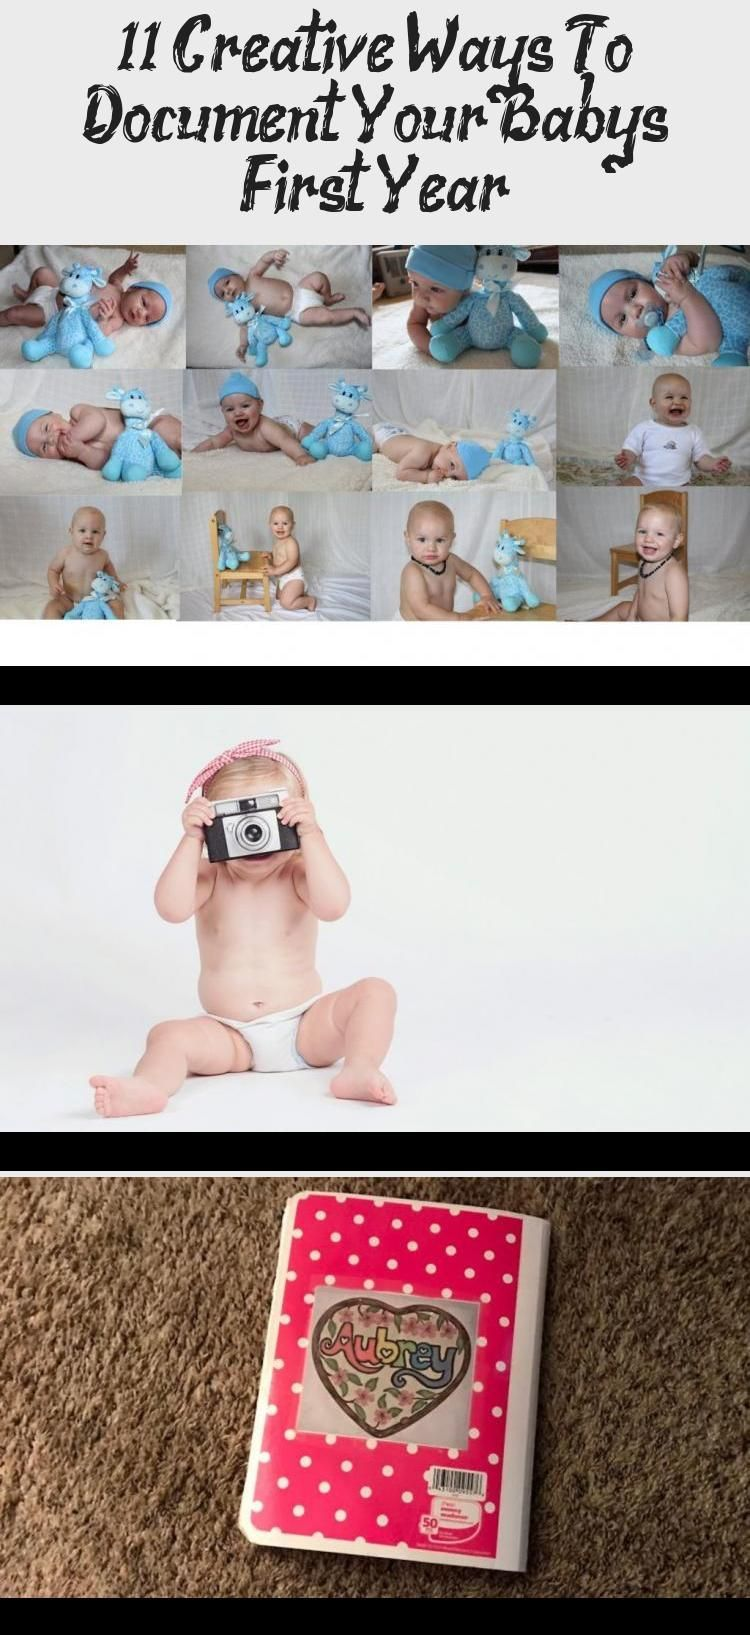 11 Creative Ways To Document Your Baby's First Year - health and diet fitness -  11 Creative Ways to...